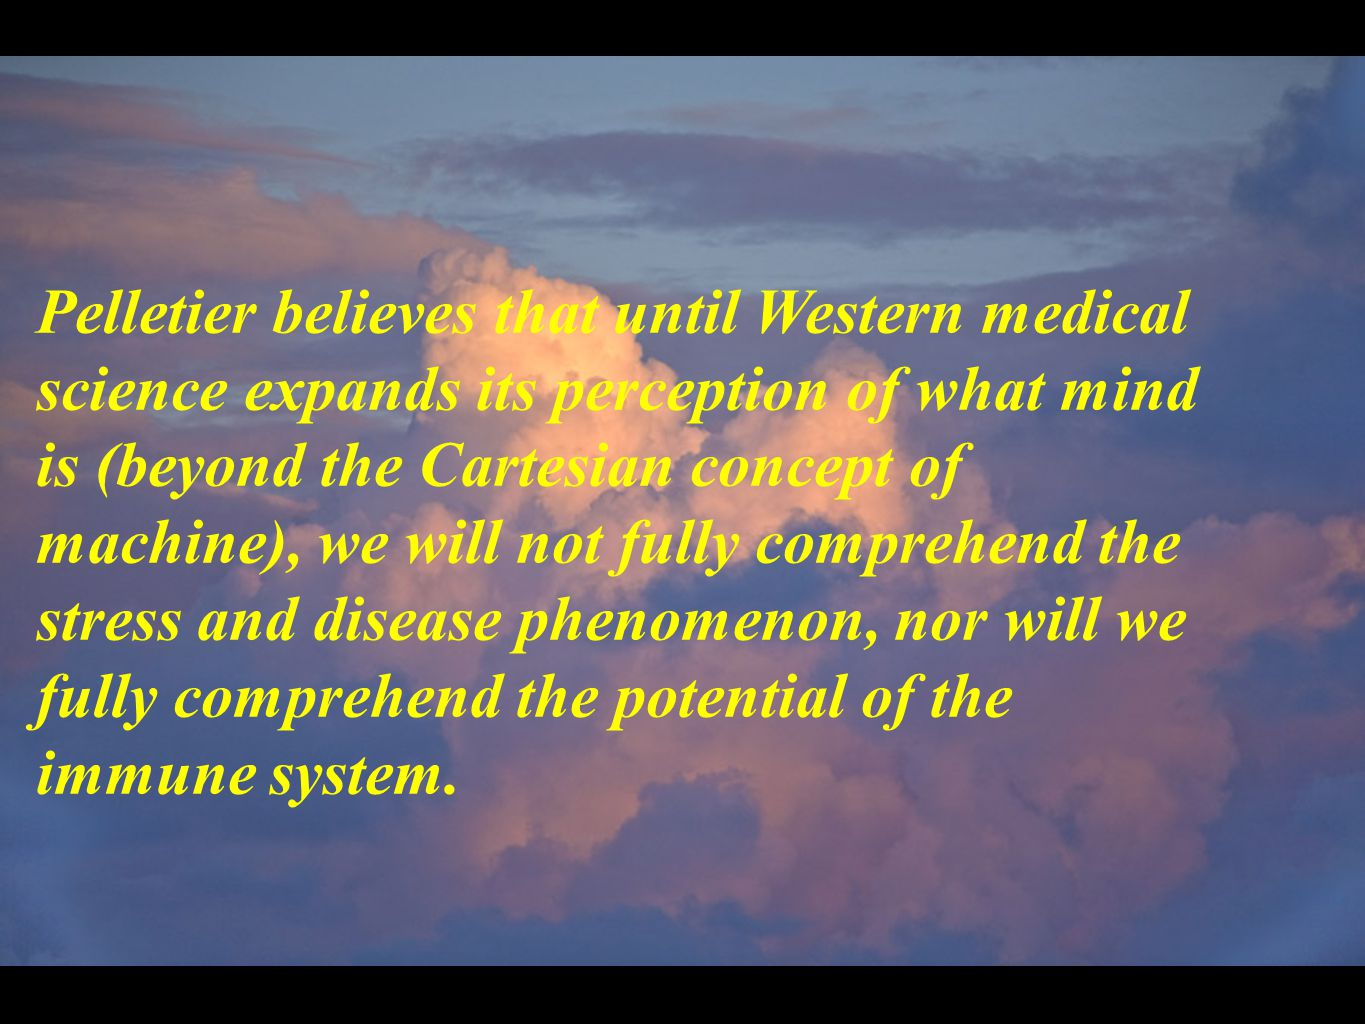 Pelletier believes that until Western medical science expands its perception of what mind is (beyond the Cartesian concept of machine), we will not fully comprehend the stress and disease phenomenon, nor will we fully comprehend the potential of the immune system.